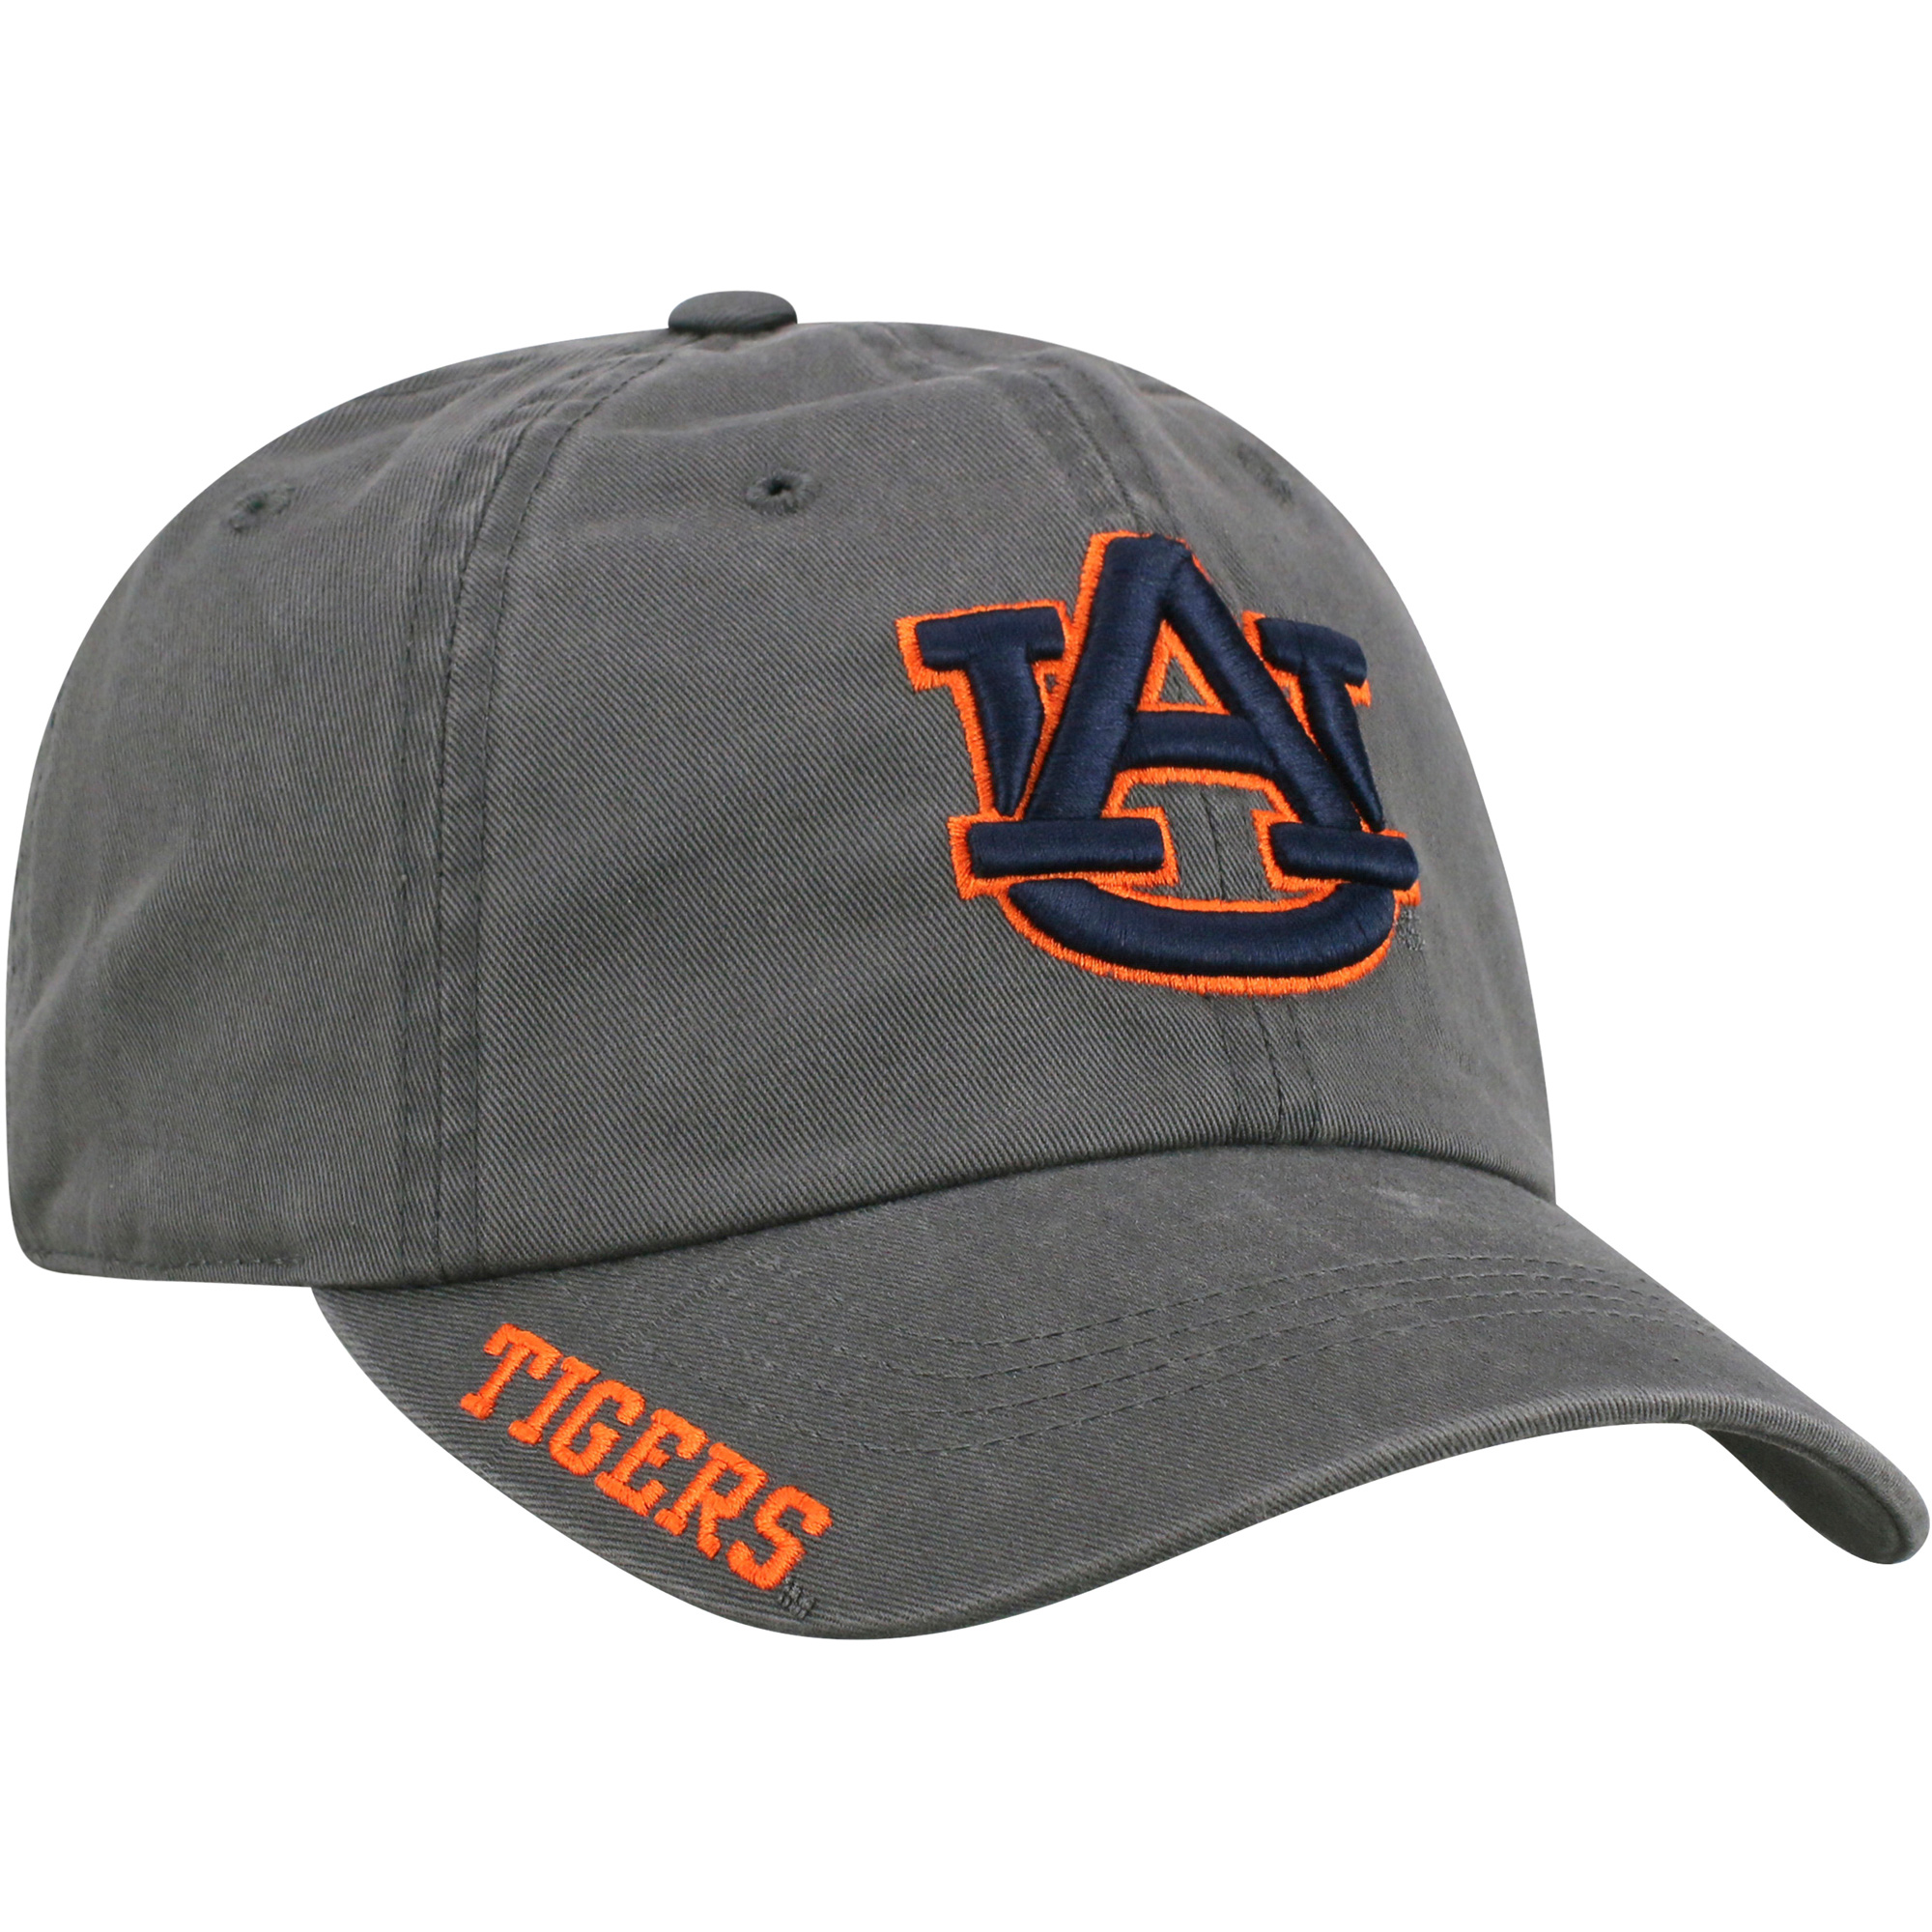 Men's Russell Charcoal Auburn Tigers Washed Adjustable Hat - OSFA